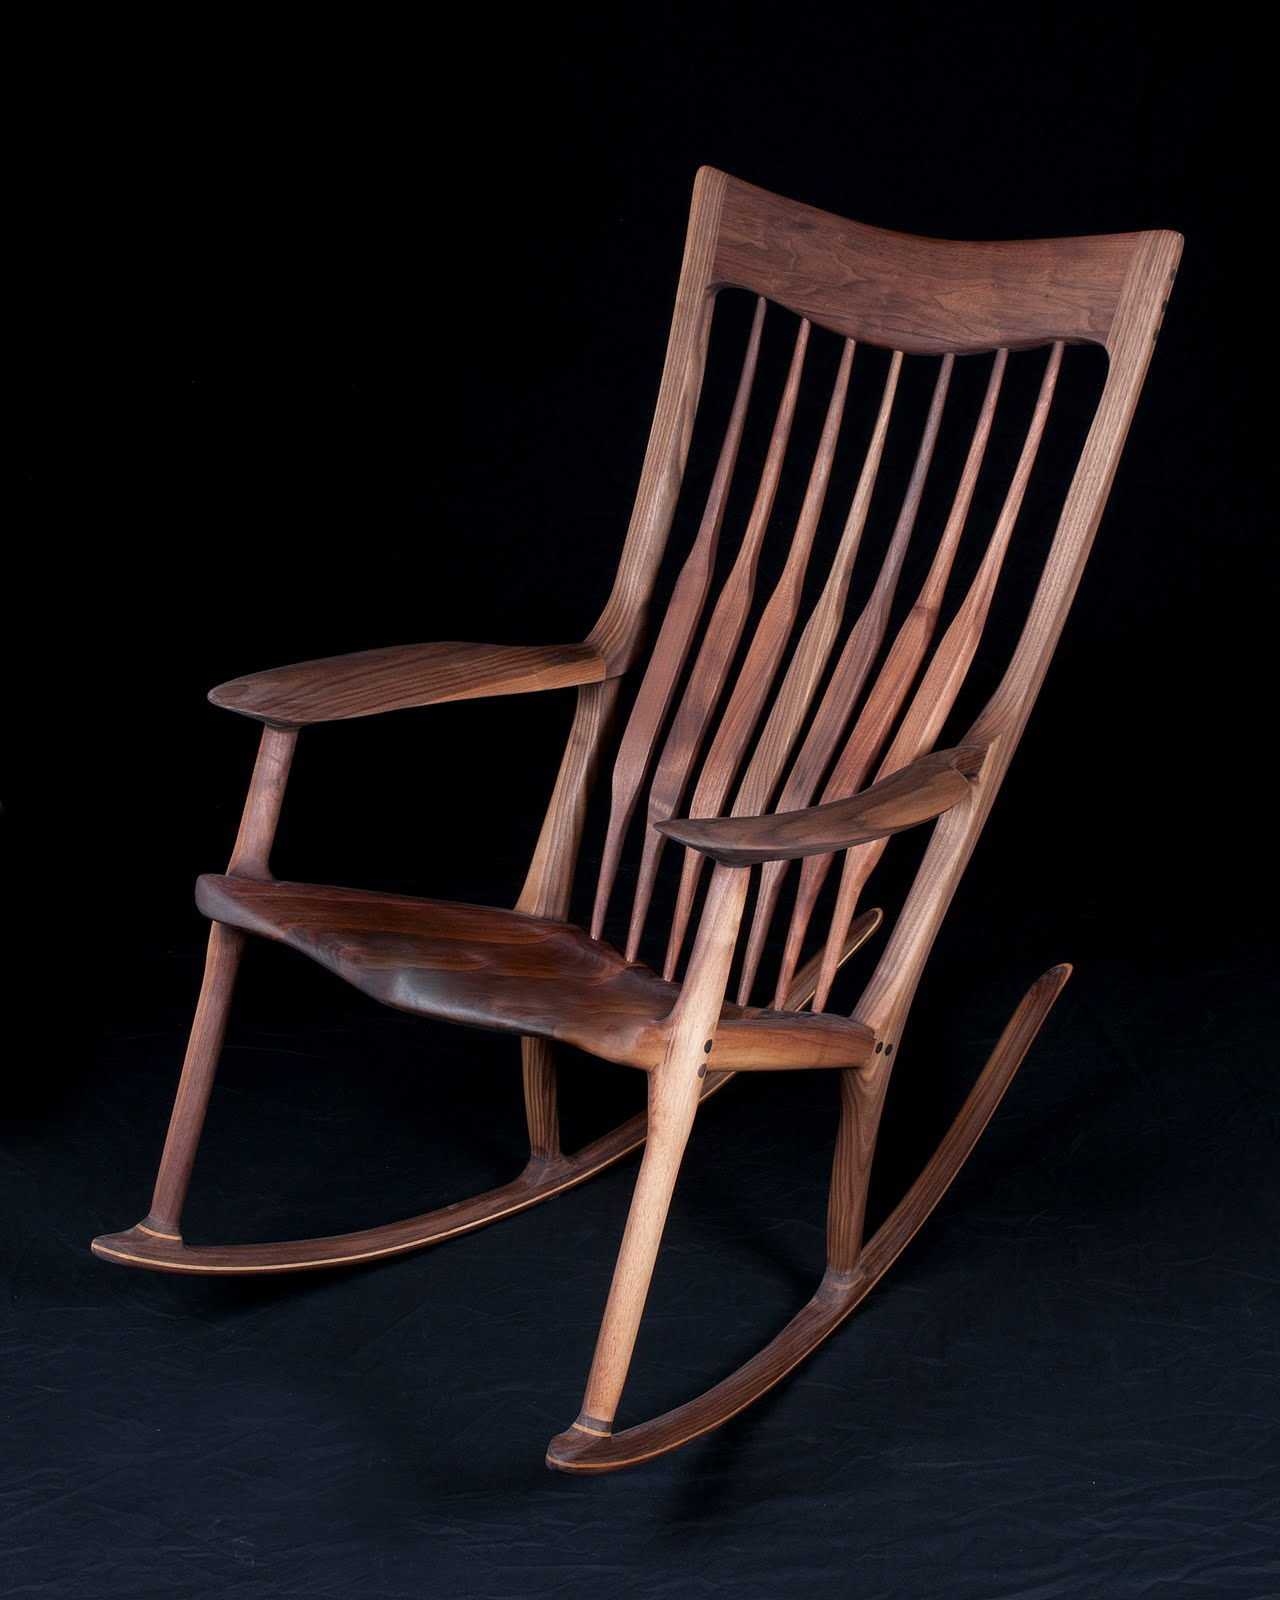 sam maloof rocking chair plans plush chairs for toddlers pat beurskens woodworking portfolio style